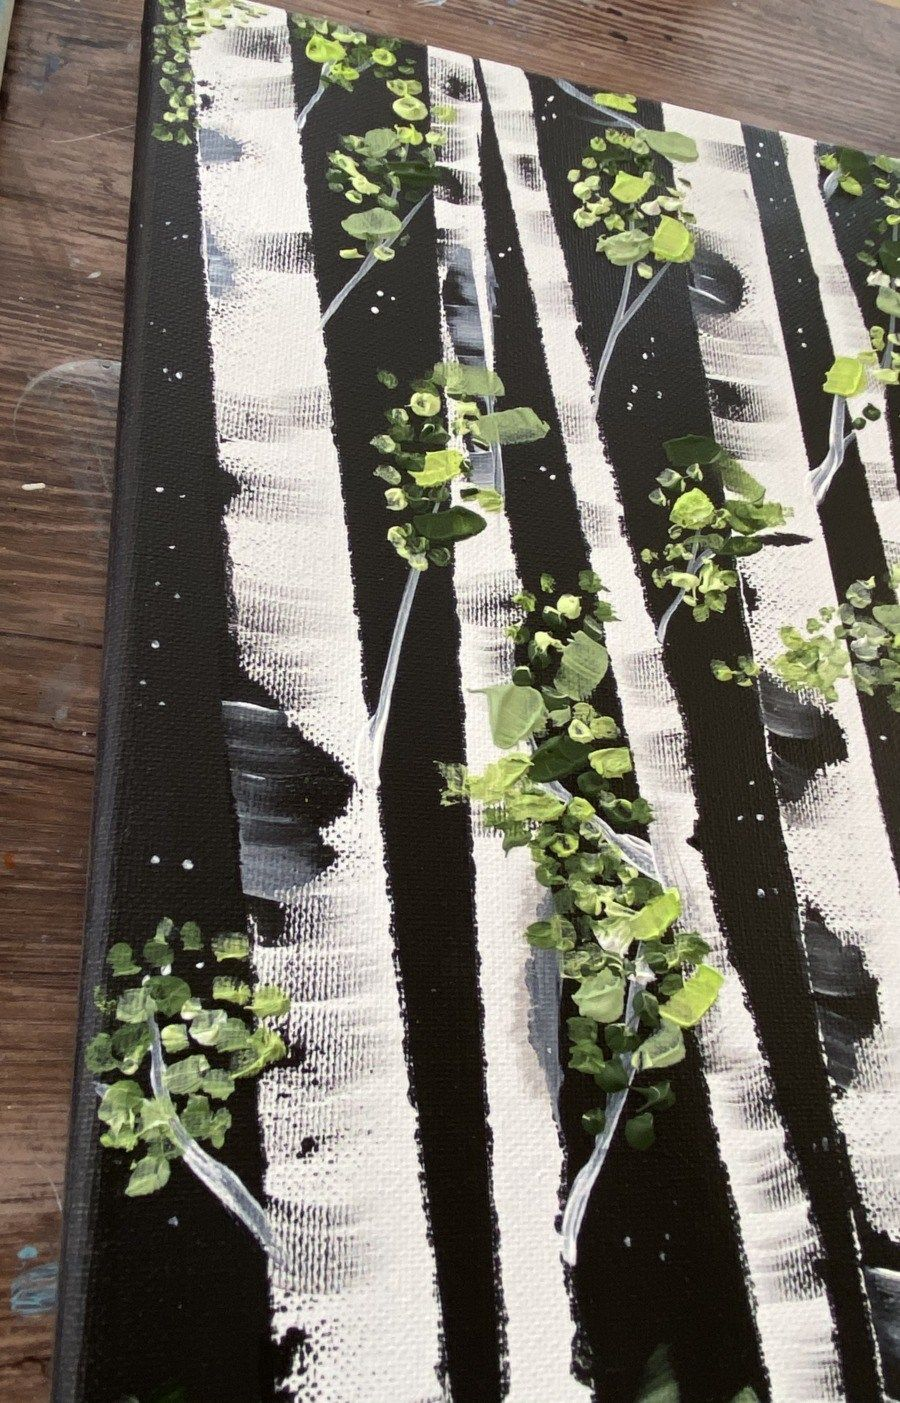 How To Paint Birch Trees - Easy Step By Step Paint